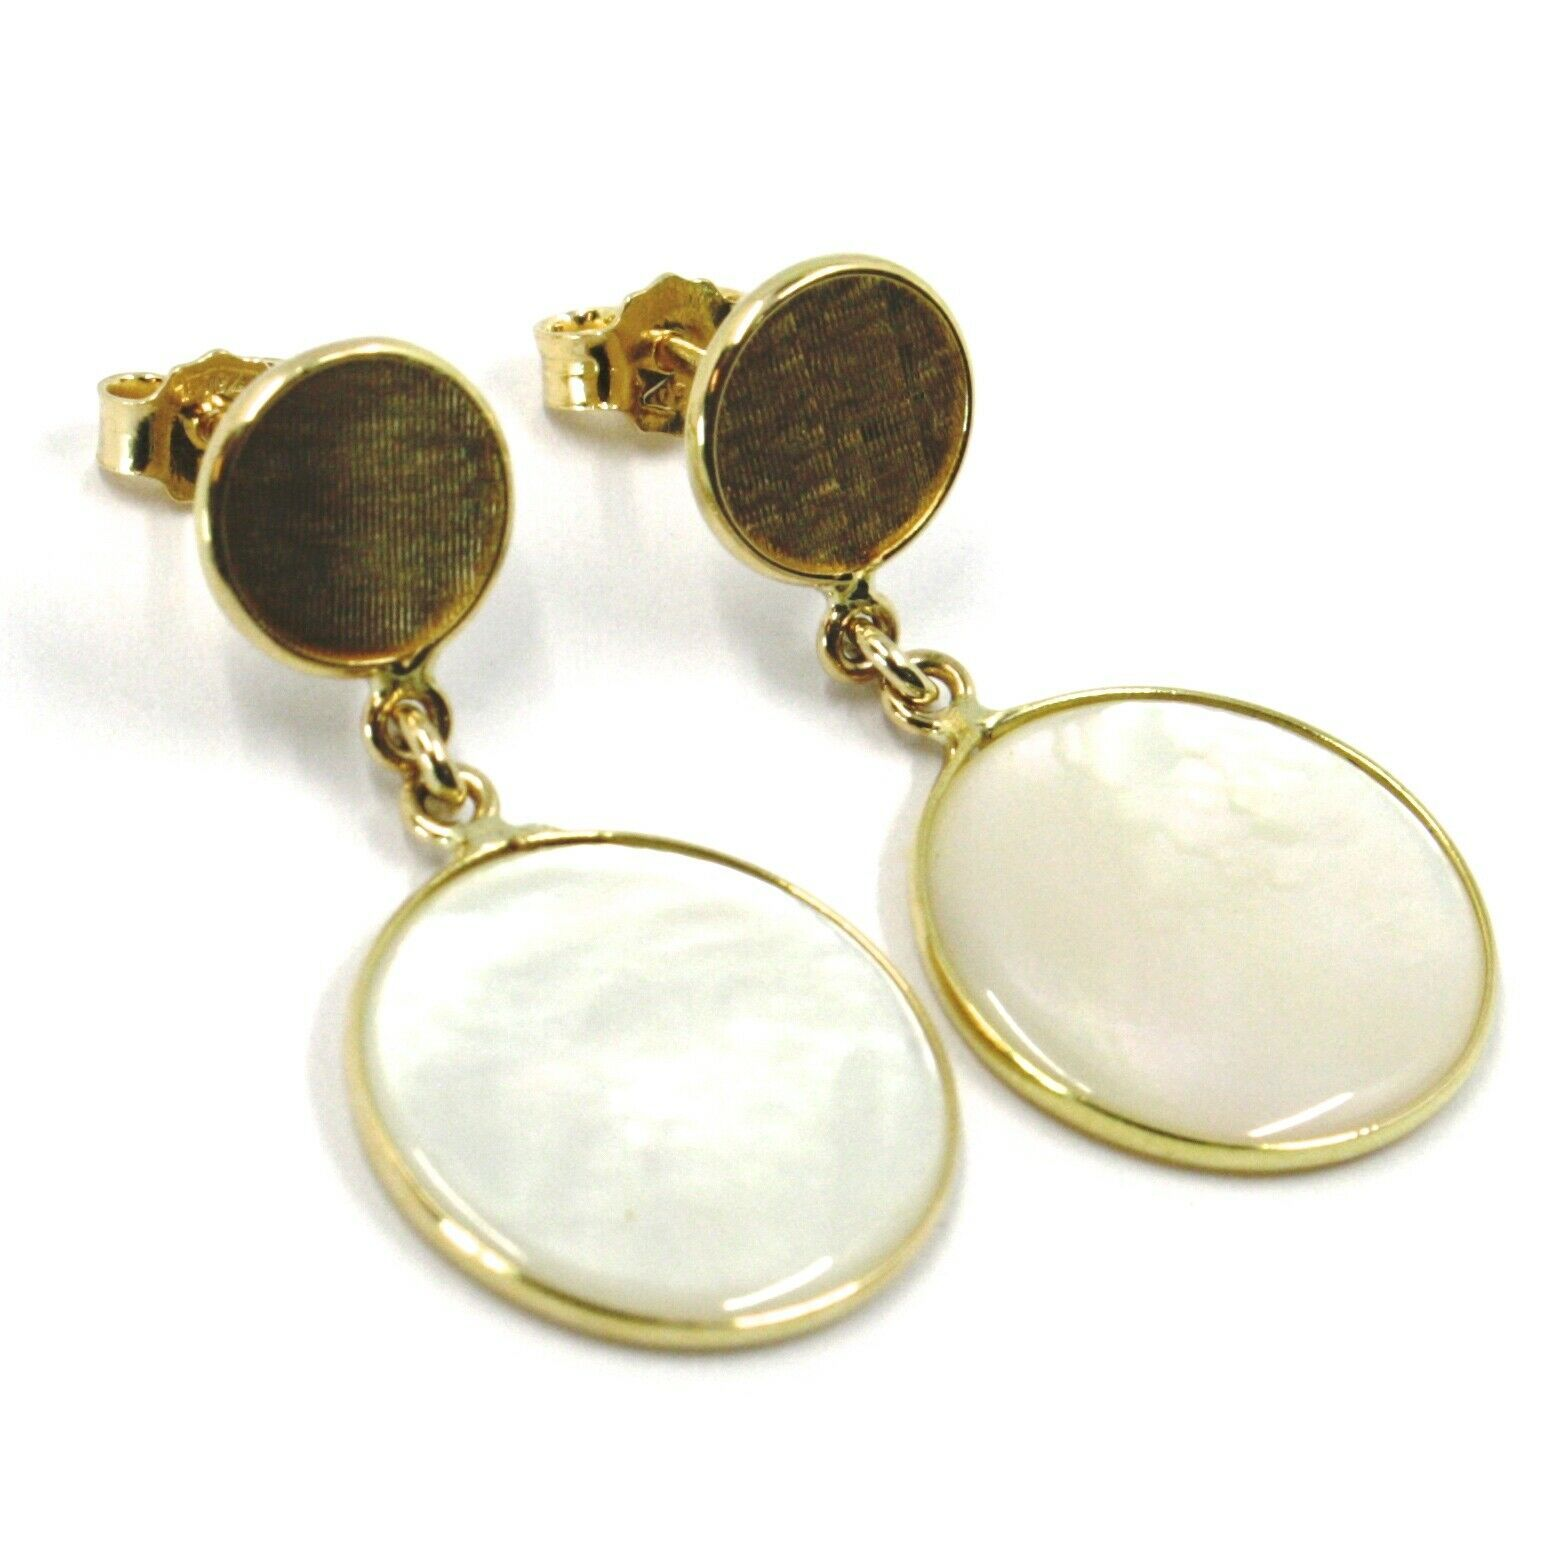 18K YELLOW GOLD PENDANT EARRINGS, FLAT MOTHER OF PEARL DISC, MADE IN ITALY